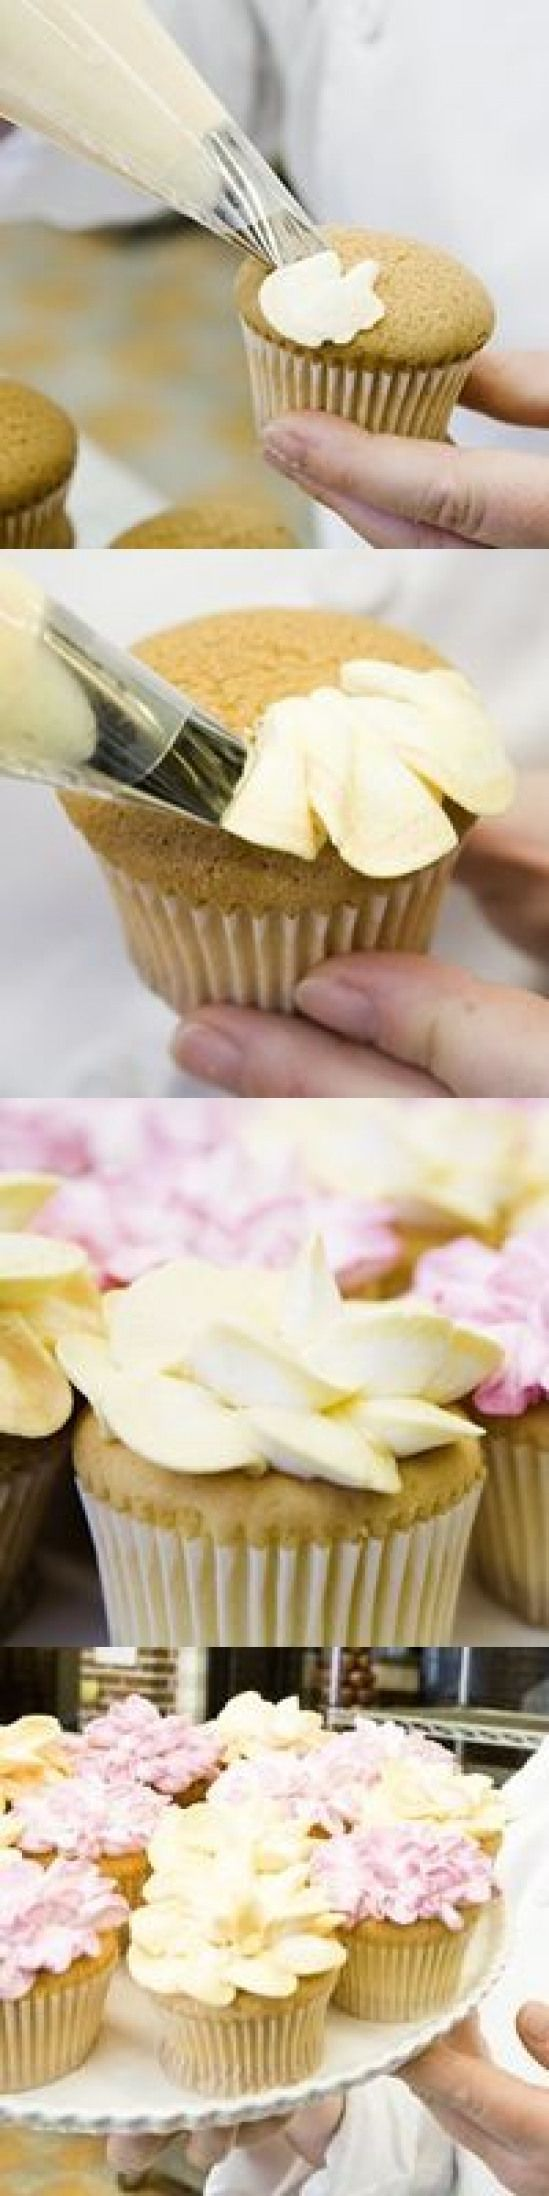 Whats playfully sweet and utterly delightful? Cupcakes! In ...